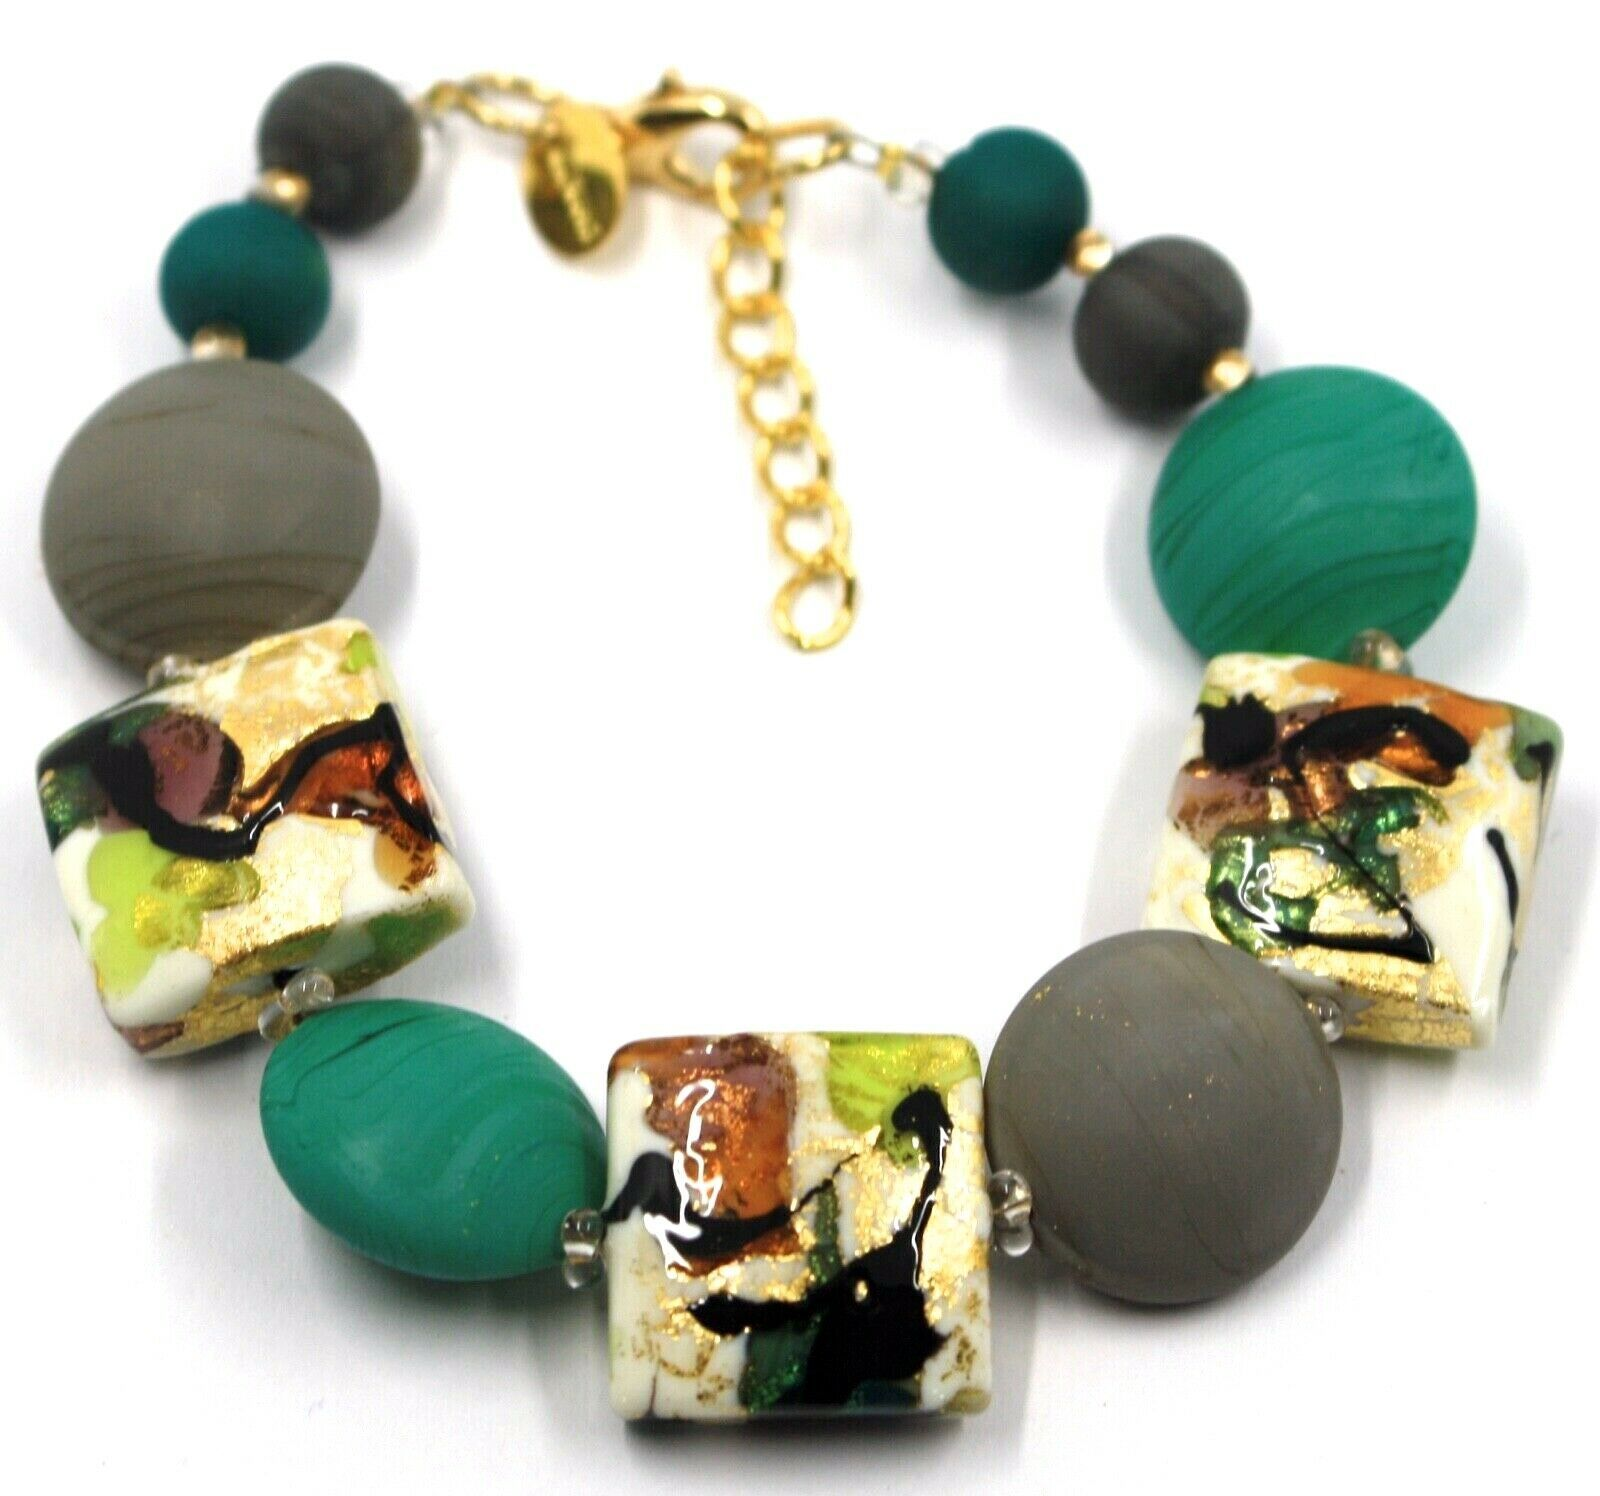 BRACELET GREEN GREY SQUARE & DISC, MURANO GLASS, GOLD LEAF, MADE IN ITALY